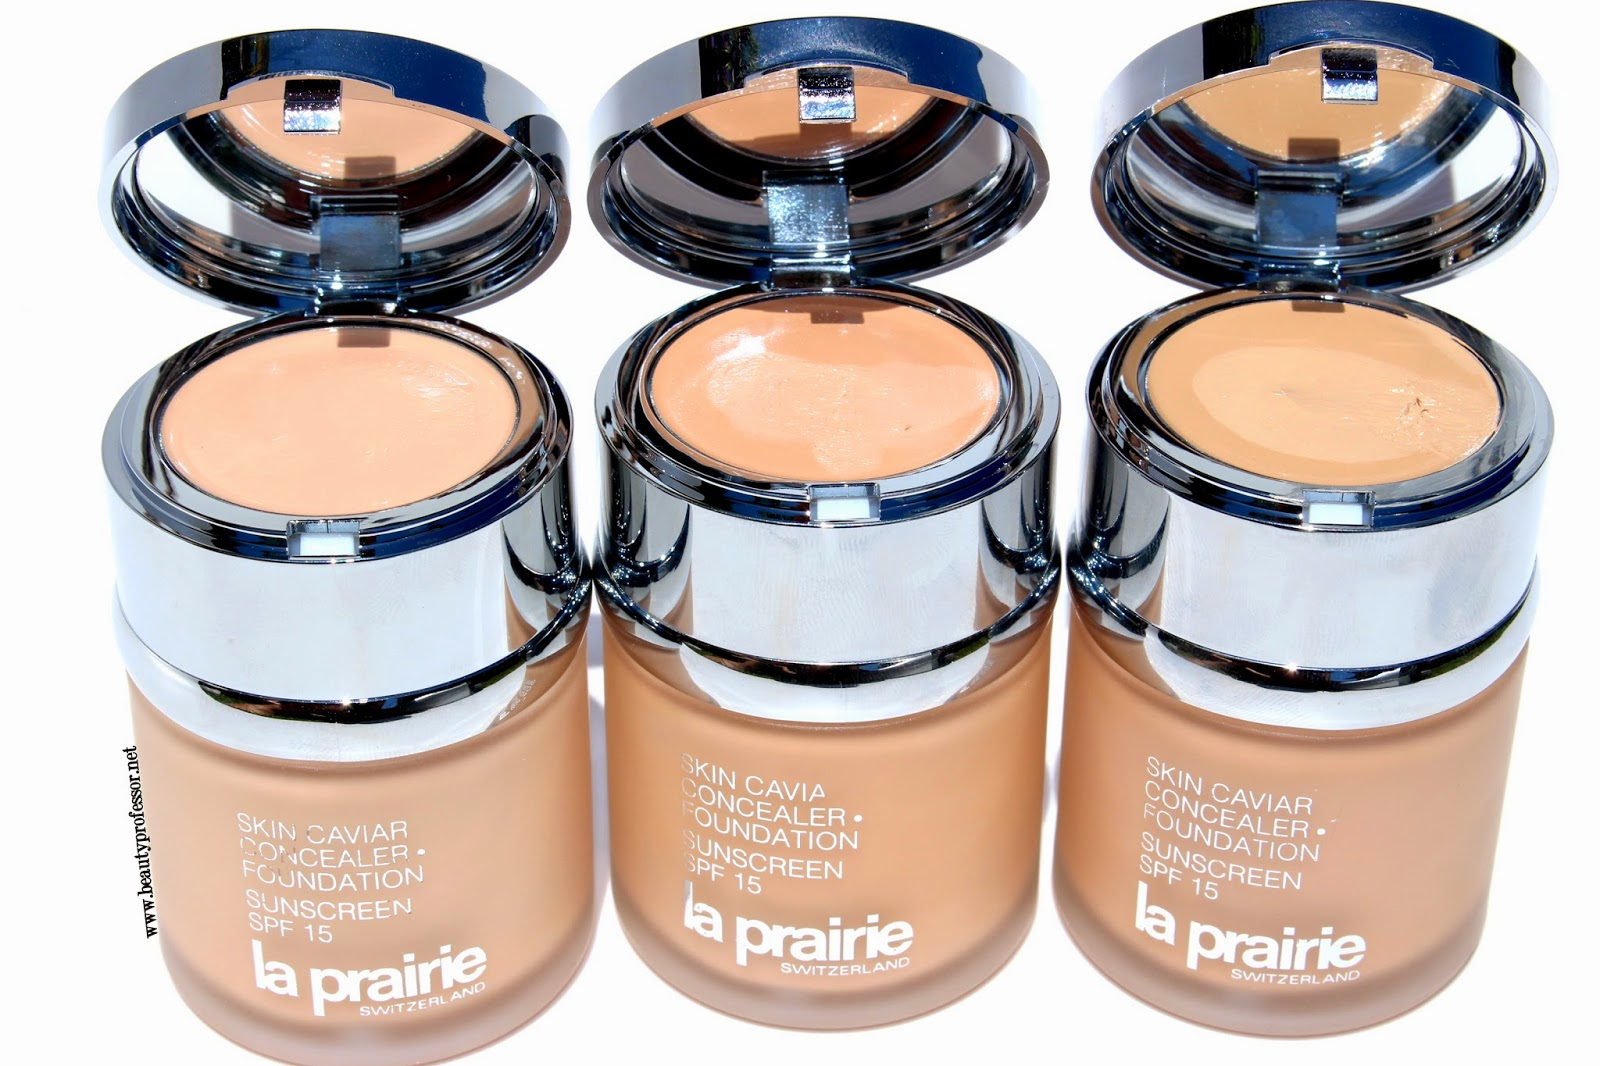 Beauty Professor: La Prairie Skin Caviar Concealer + Foundation ...